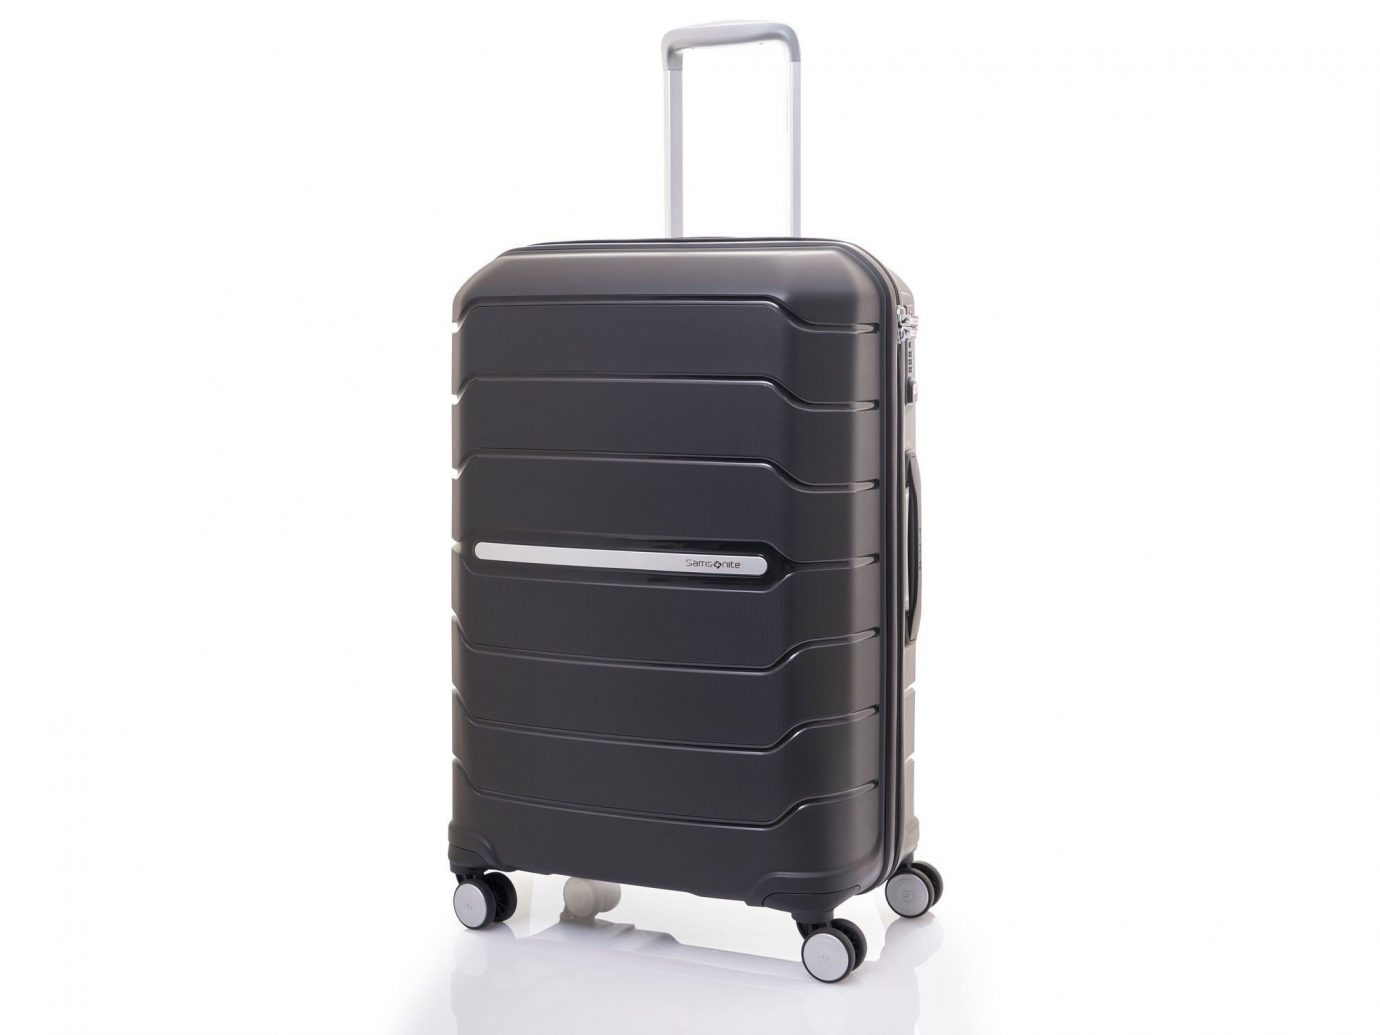 Travel Shop Travel Tech Travel Tips suitcase product product design hand luggage luggage & bags